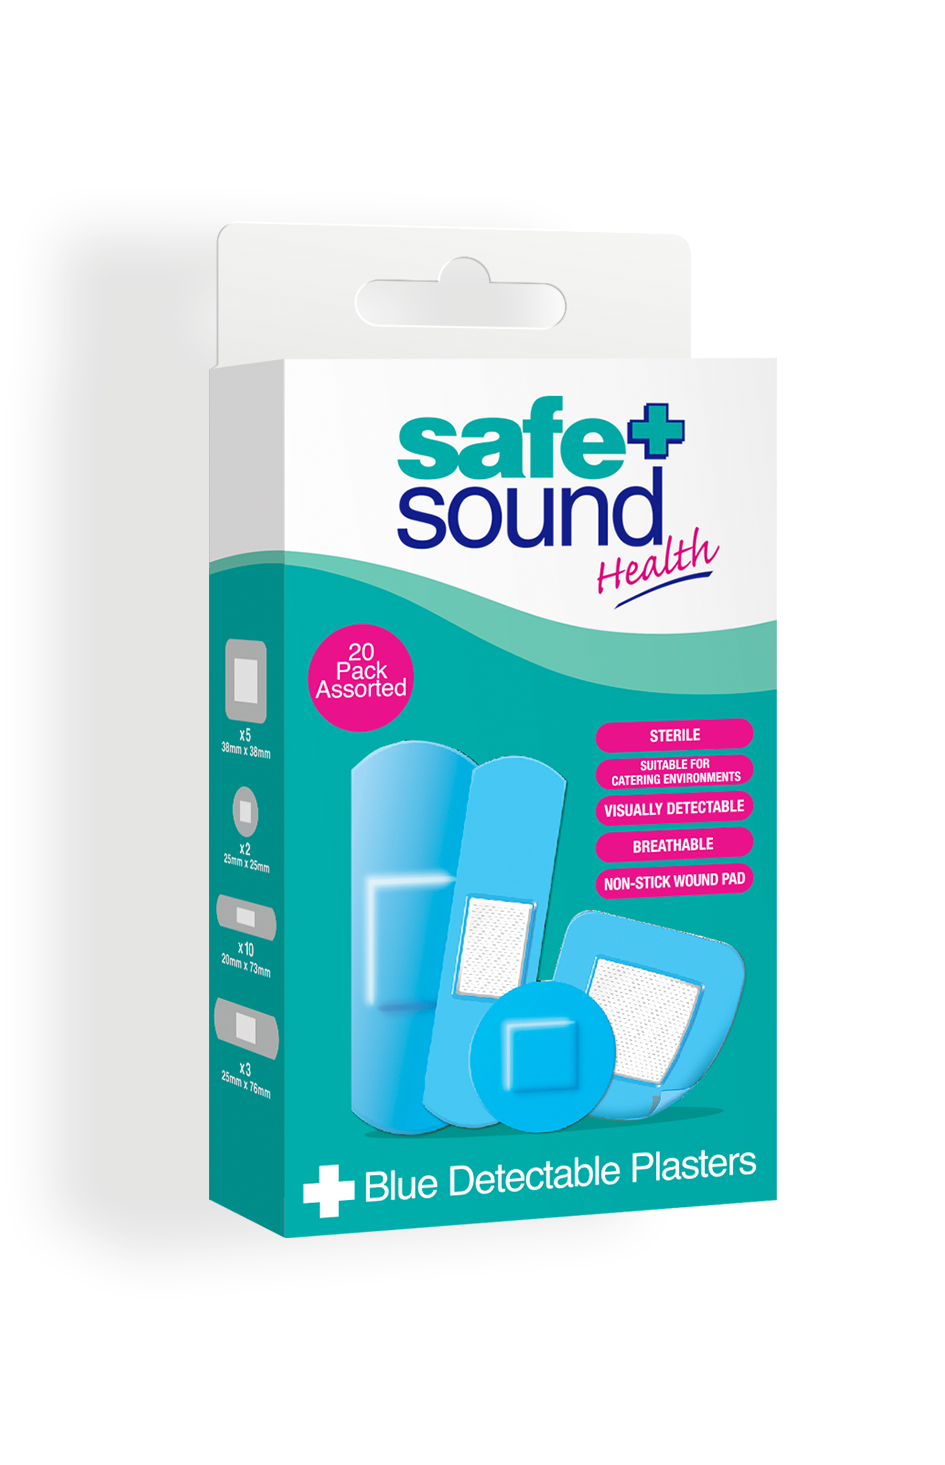 Safe and Sound Health pack of 20 Blue Detectable Catering Plasters